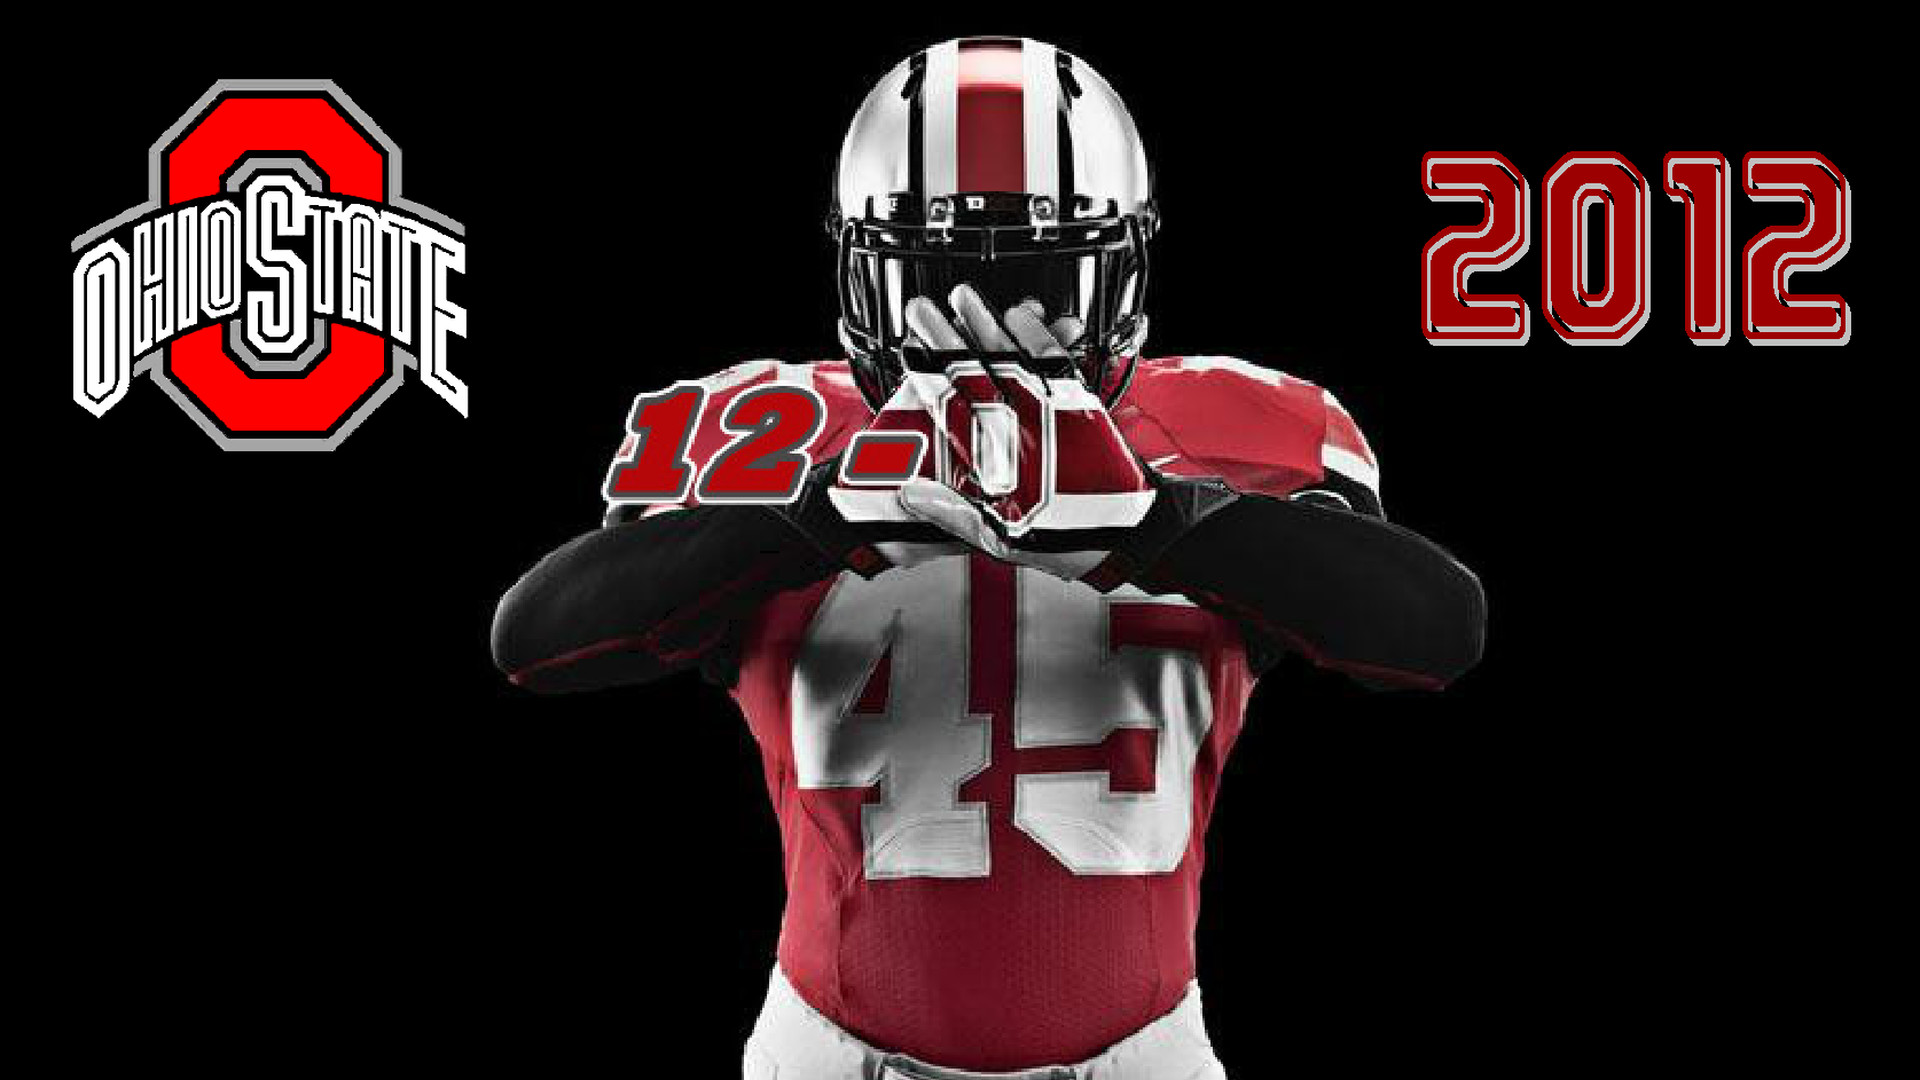 1920x1080 ... OHIO STATE 12-0 2012 by Bucks7T2